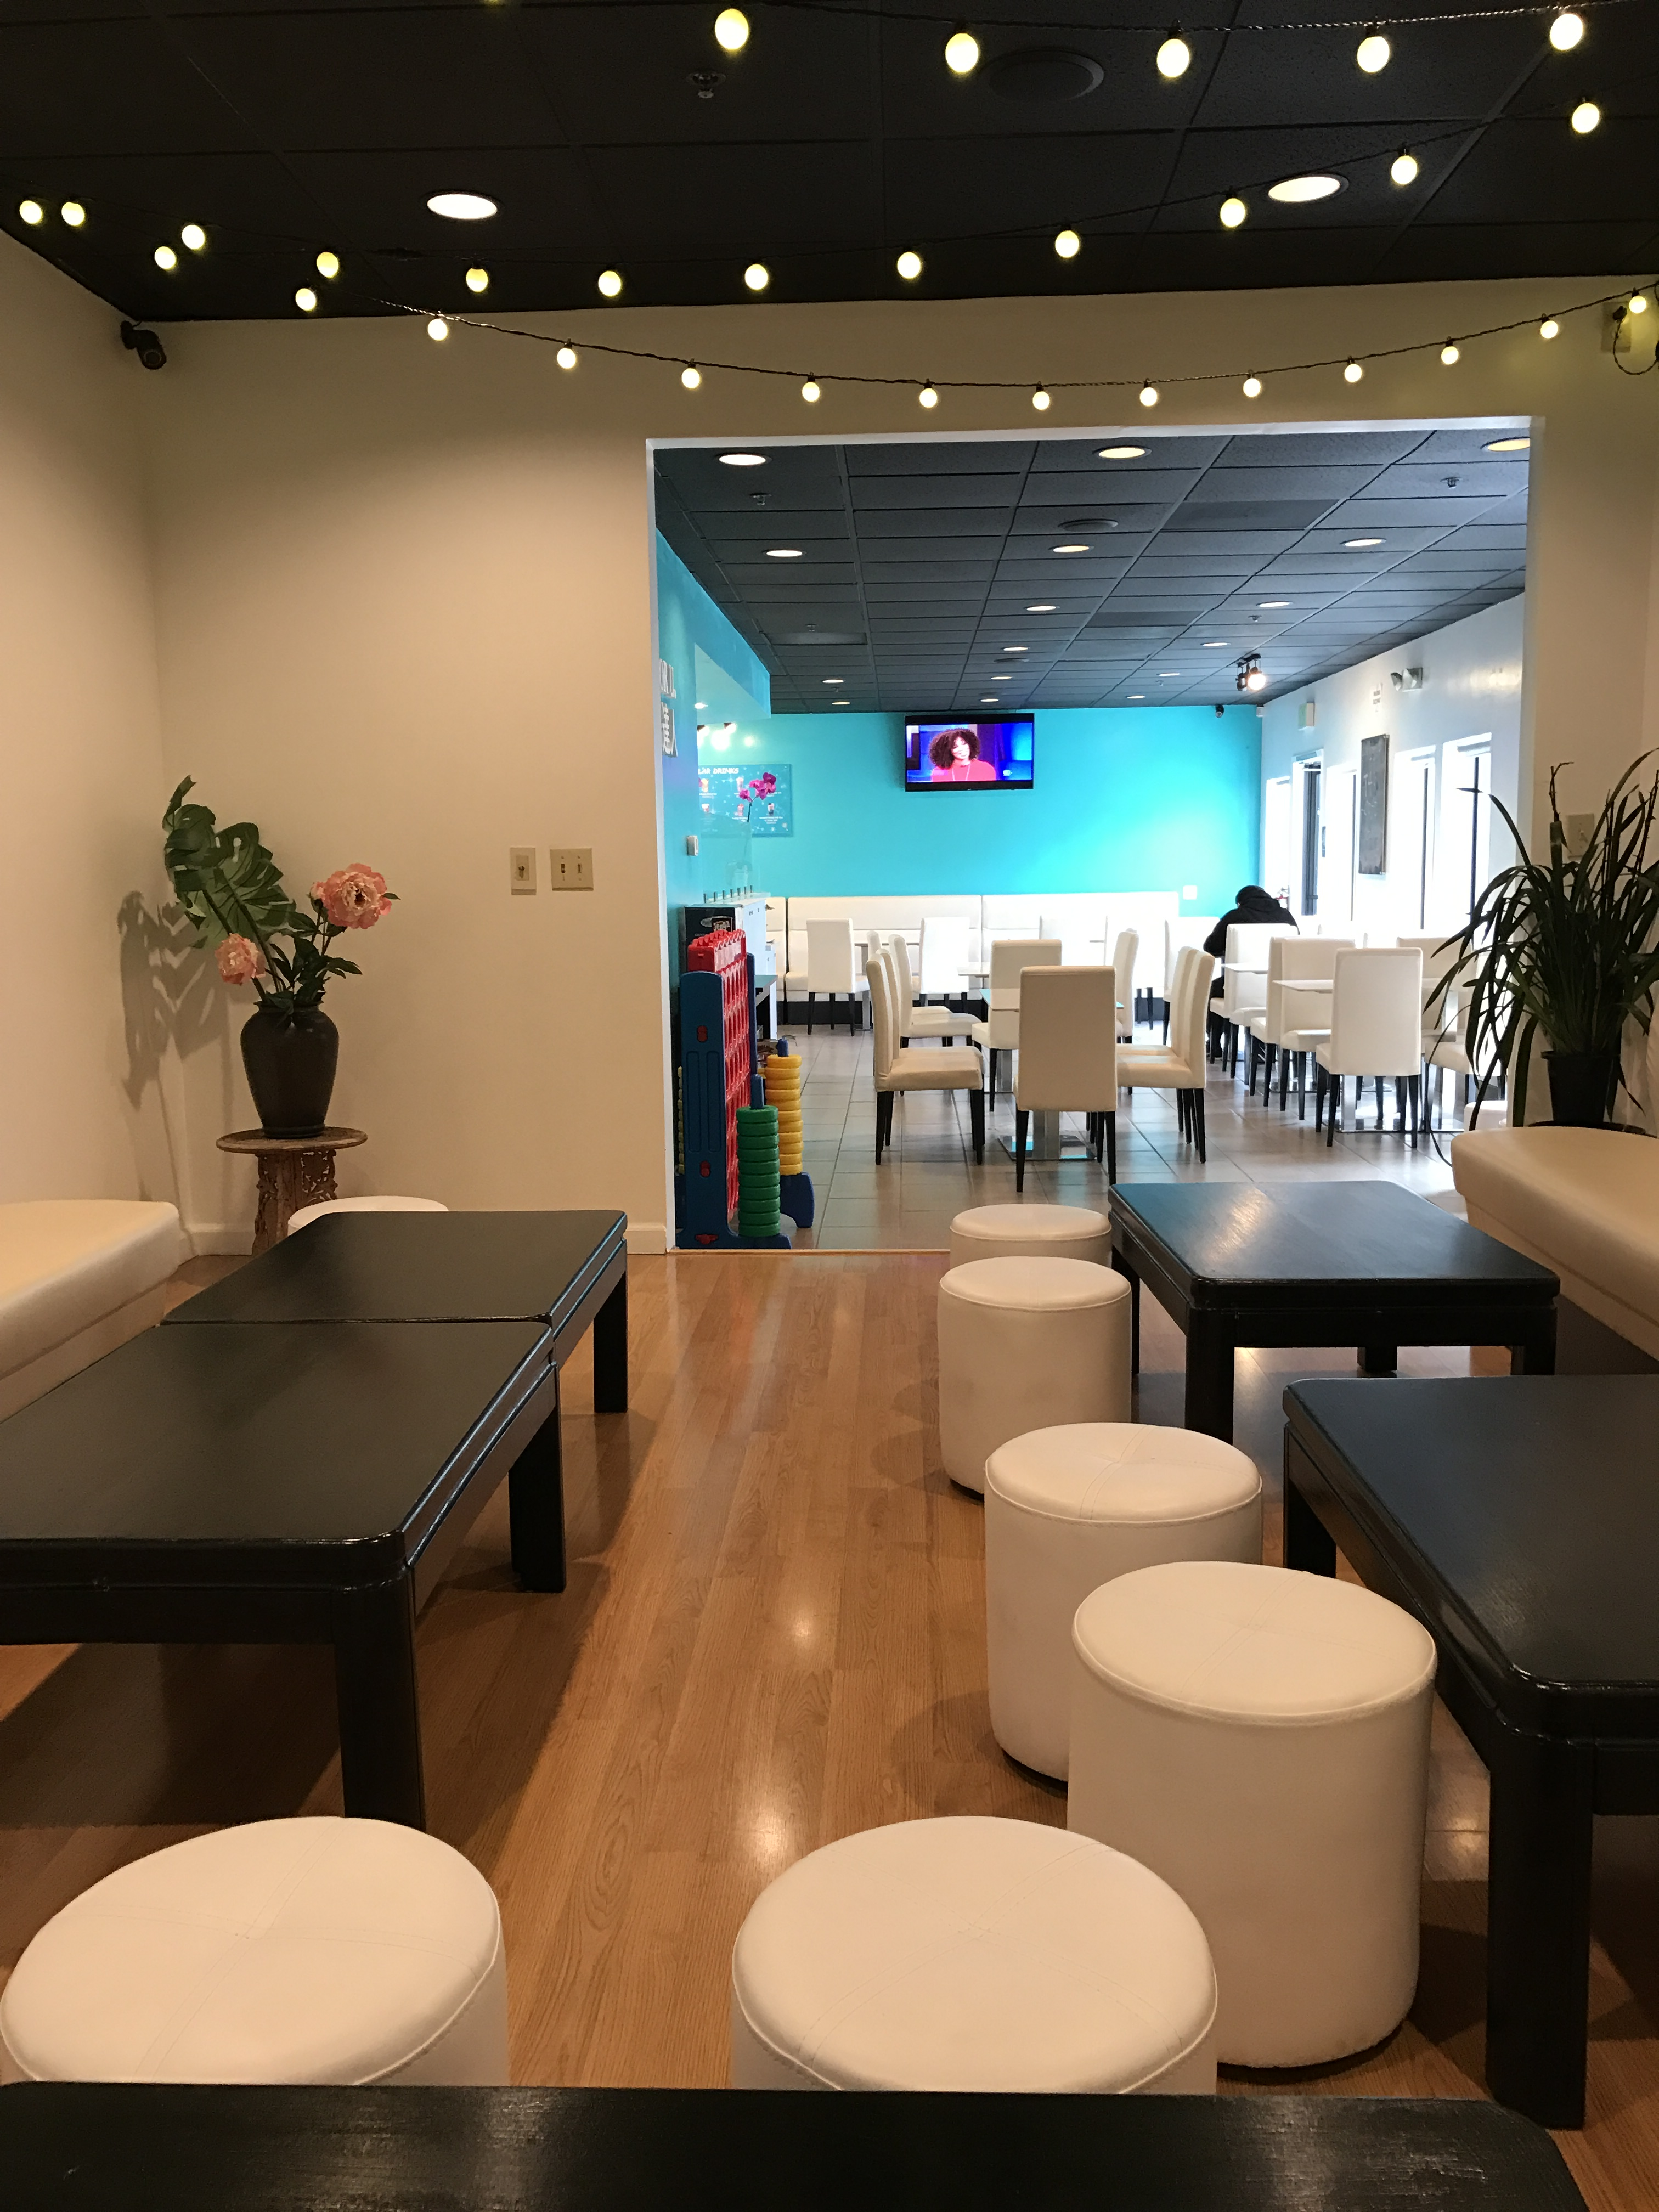 REVIEW: New boba spot T4 cute, but nothing new